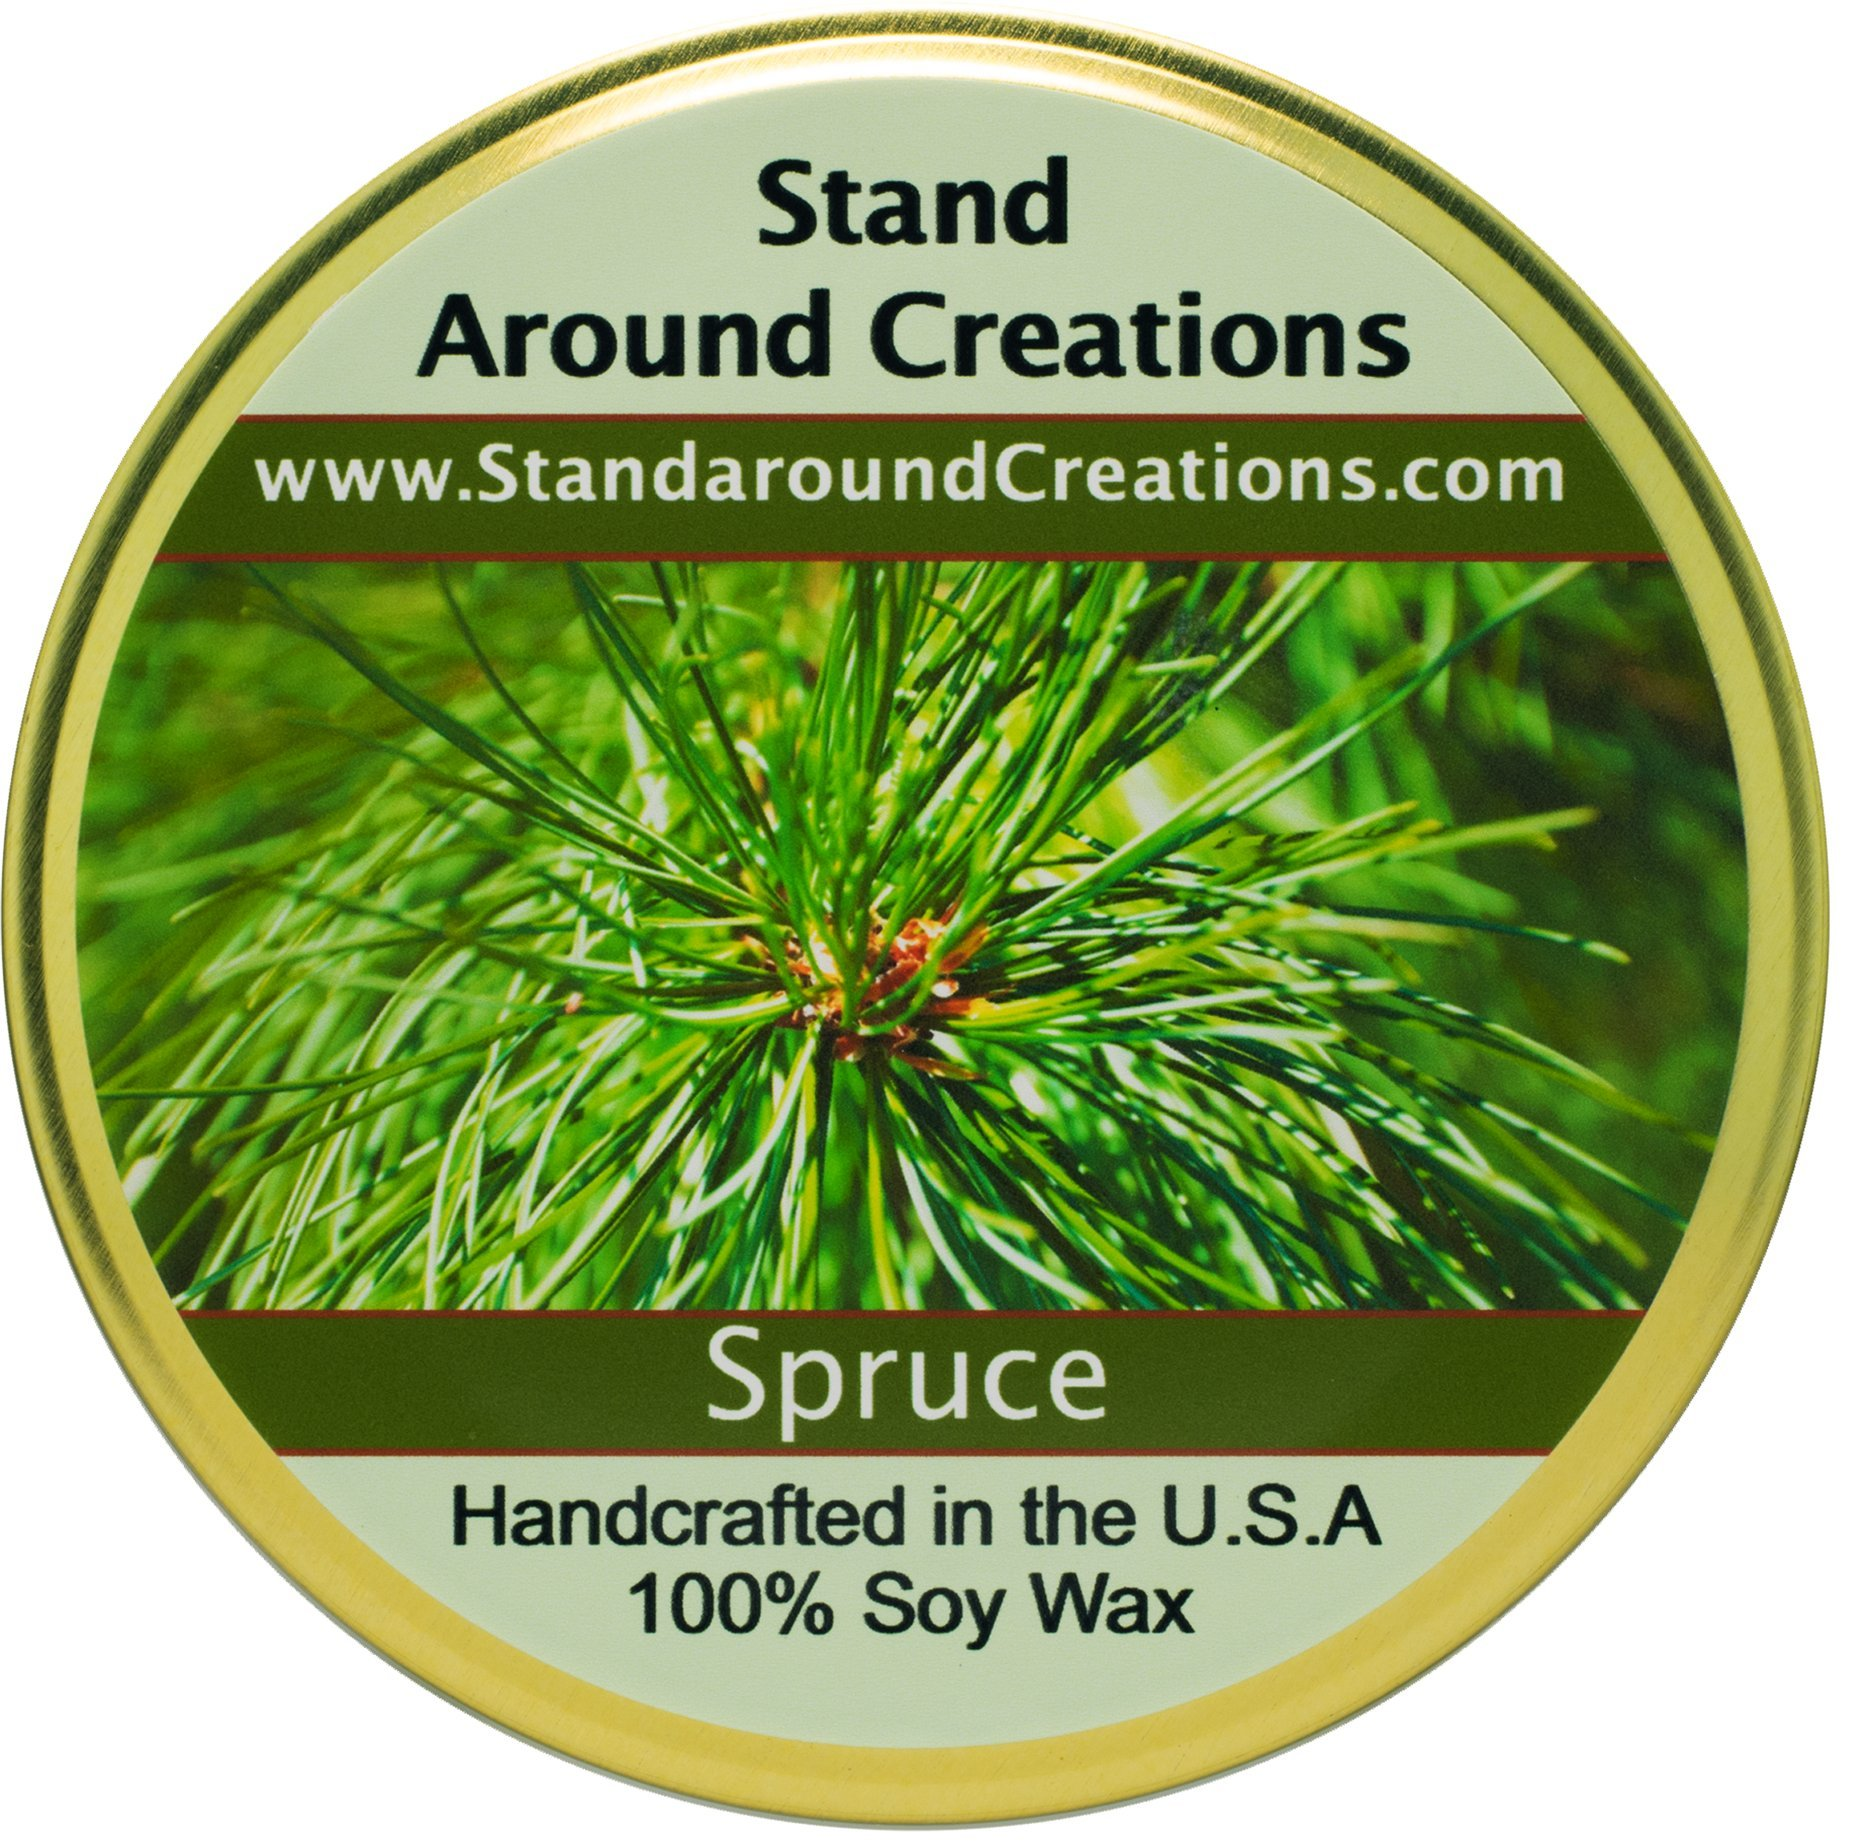 Premium 100% Soy Tureen Candle - 11 oz. - Spruce: More complex than a typical Frasier or Douglas Fir. Capture the spirit of the holidays. Made w/ natural essential oils.